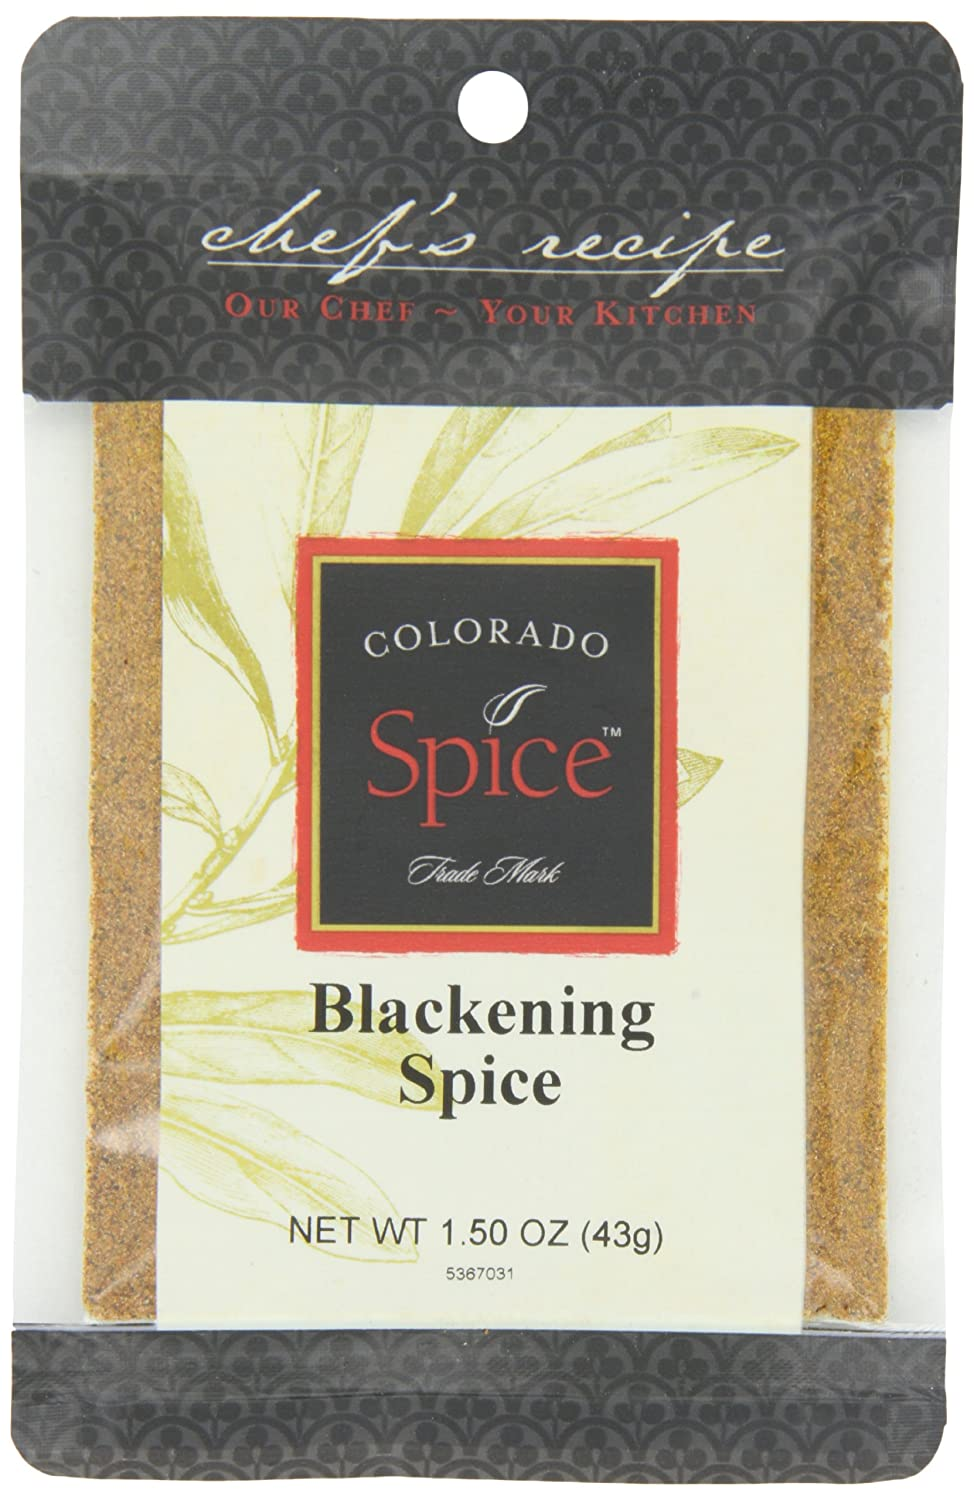 Colorado Spice Company, Beef, Poultry, Pork and Lamb Spice, Blackening Spice, 1.5-Ounce-Ounce-Ounce Packet (Pack of 12)